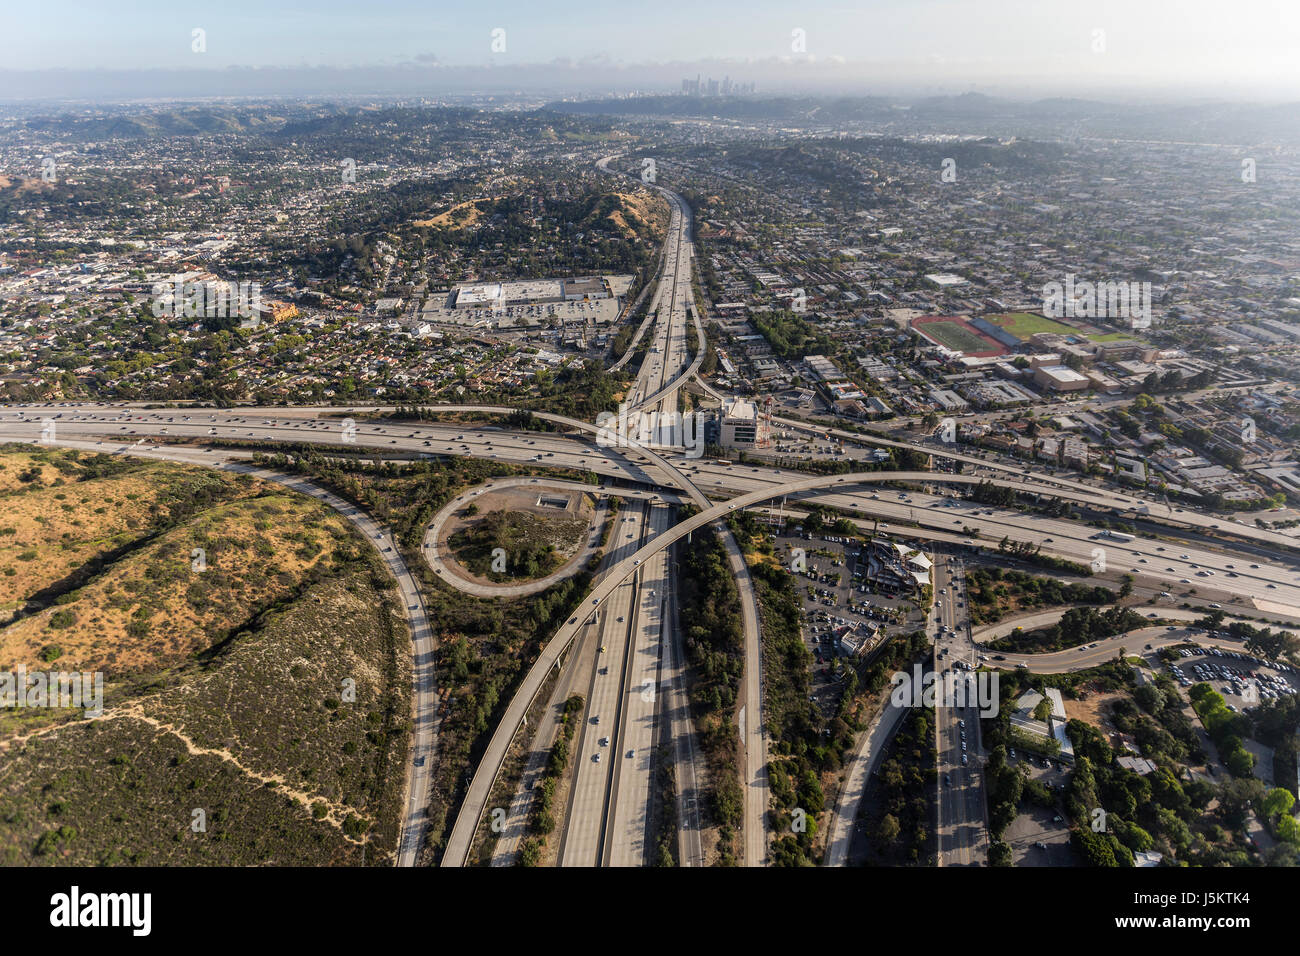 Aerial of the Glendale 2 and Ventura 134 freeway interchange in the Eagle Rock area of Los Angeles, California. - Stock Image